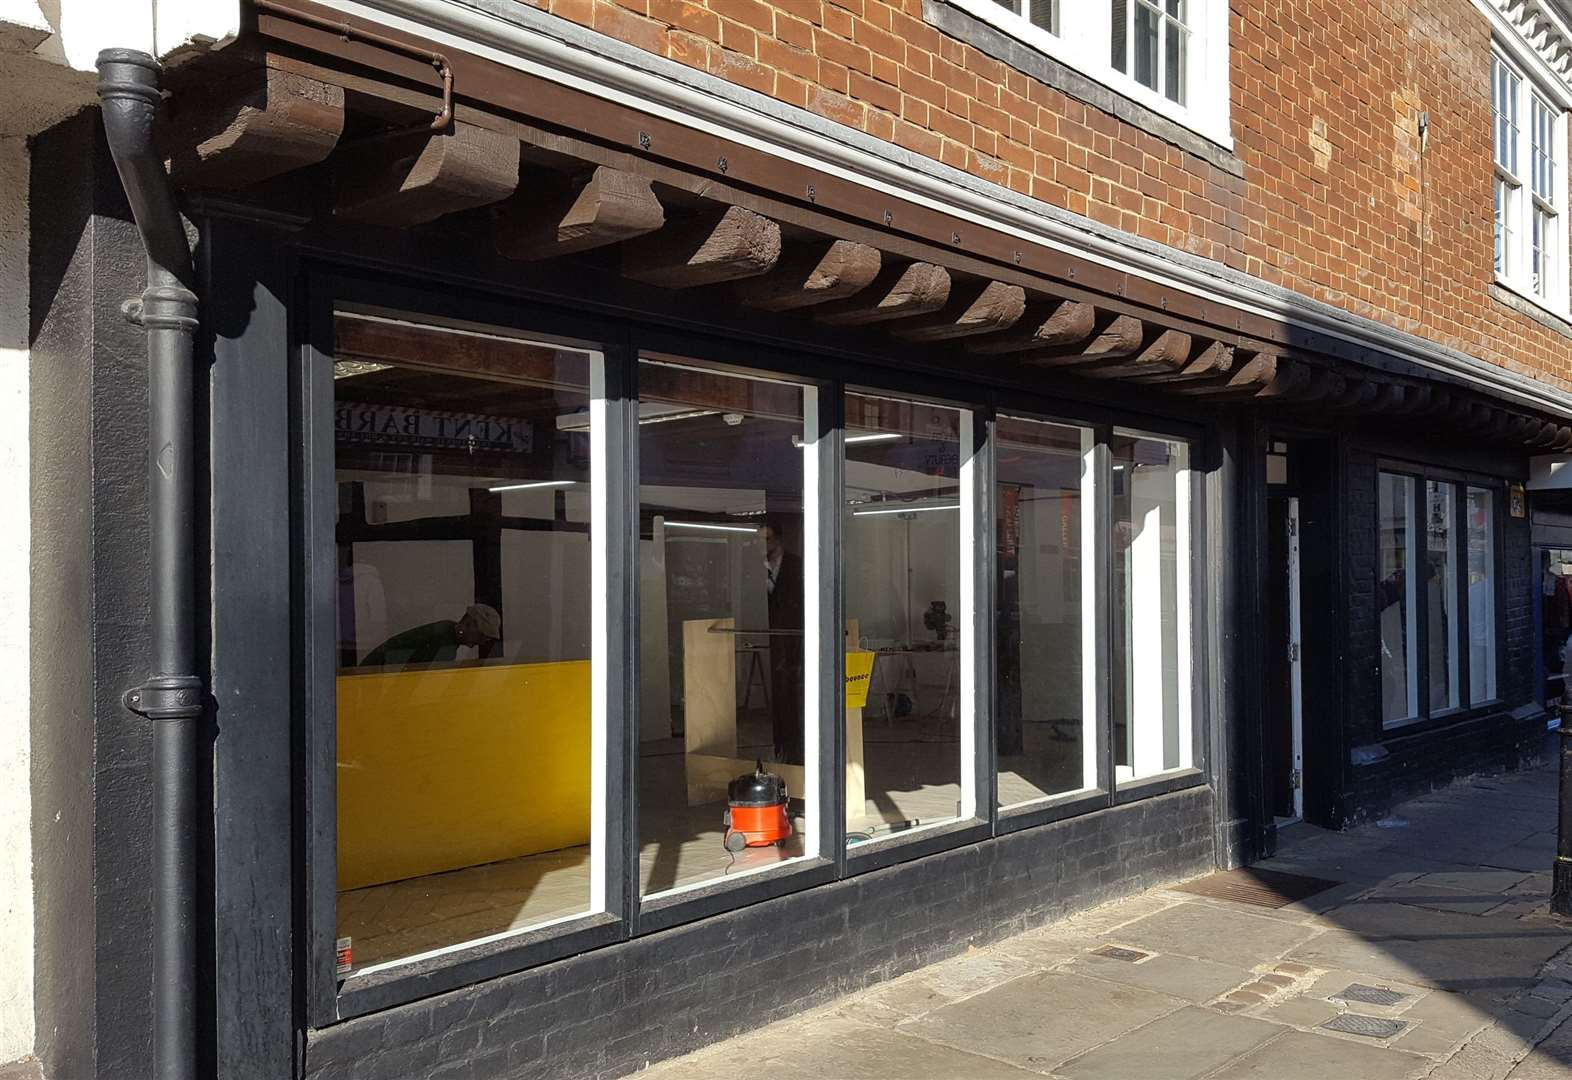 New clothing shop to open in high street